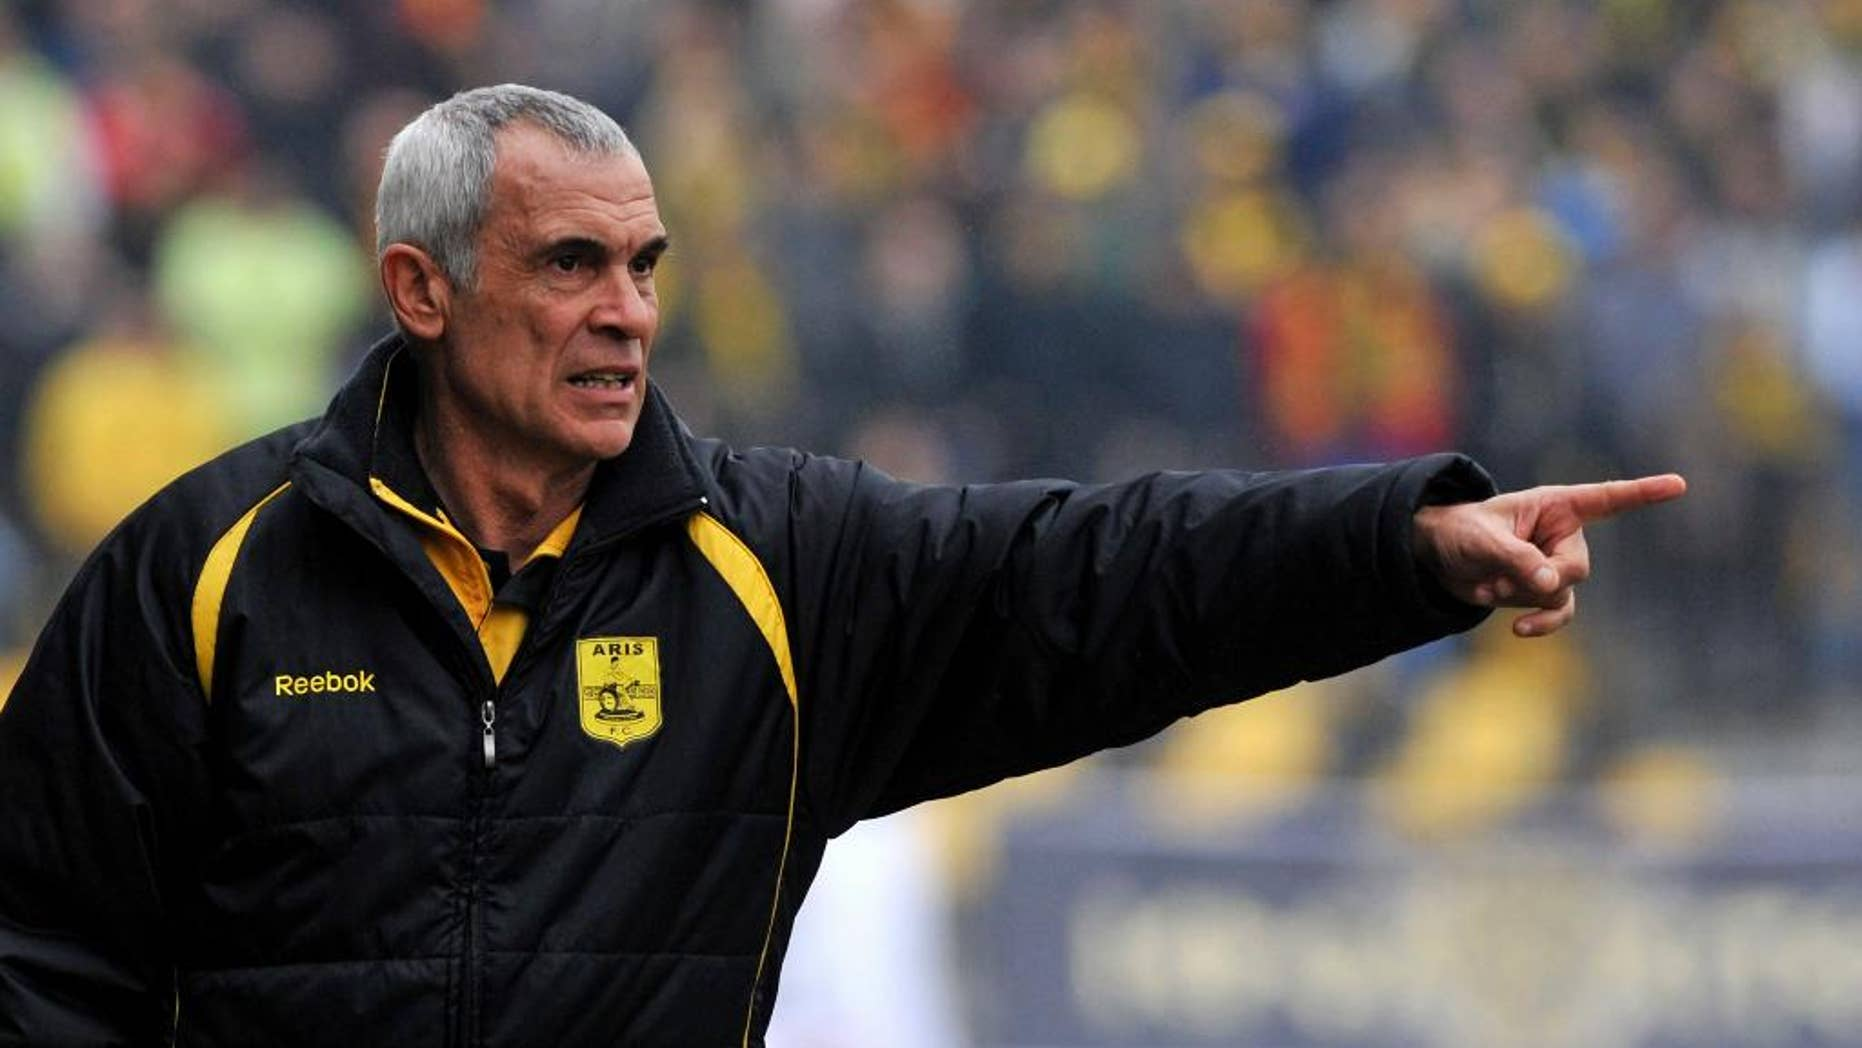 FILE - In this Feb. 17, 2010 file photo, former Aris' head coach Hector Cuper of Argentina, gives instructions to his players during a Greek League soccer match in Thessaloniki, Greece. The Egyptian Football Association announced on Monday, March 2, 2015 that they have appointed Cuper as the new manager of its national team. The 59-year old previously led the Emirati al-Wasl club, and the Spanish Racing de Santander. Egypt's team has been without a fulltime manager since American Bob Bradley quit in late 2013 after he failed to take the Pharaohs to the World Cup in Brazil. Egyptian soccer suffered a massive setback when more than 70 soccer fans were killed in post-match violence in 2012. Last month, 20 fans died in a stampede outside a stadium as police fired tear gas. (AP Photo/Nikolas Giakoumidis, File)